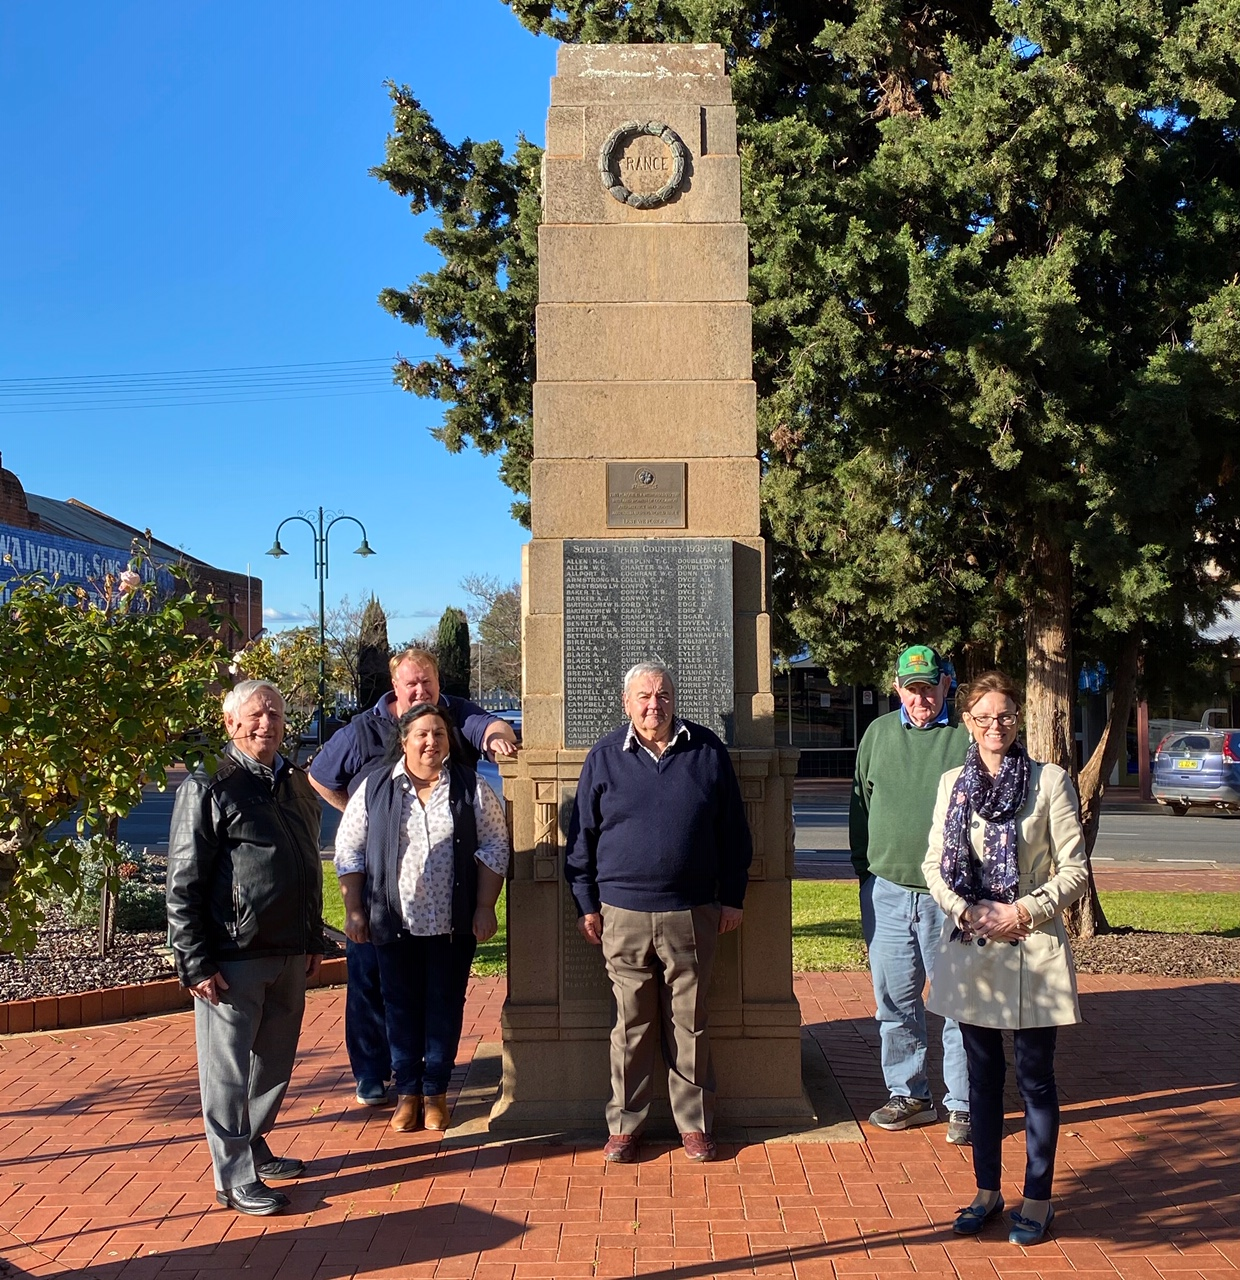 Dave and Angela McCann, Mayor Cr John Seymour, Geoff Glass, Bill Levy and Steph Cooke MP stand in front of the Coolamon cenotaph. The sky is clear and very blue.